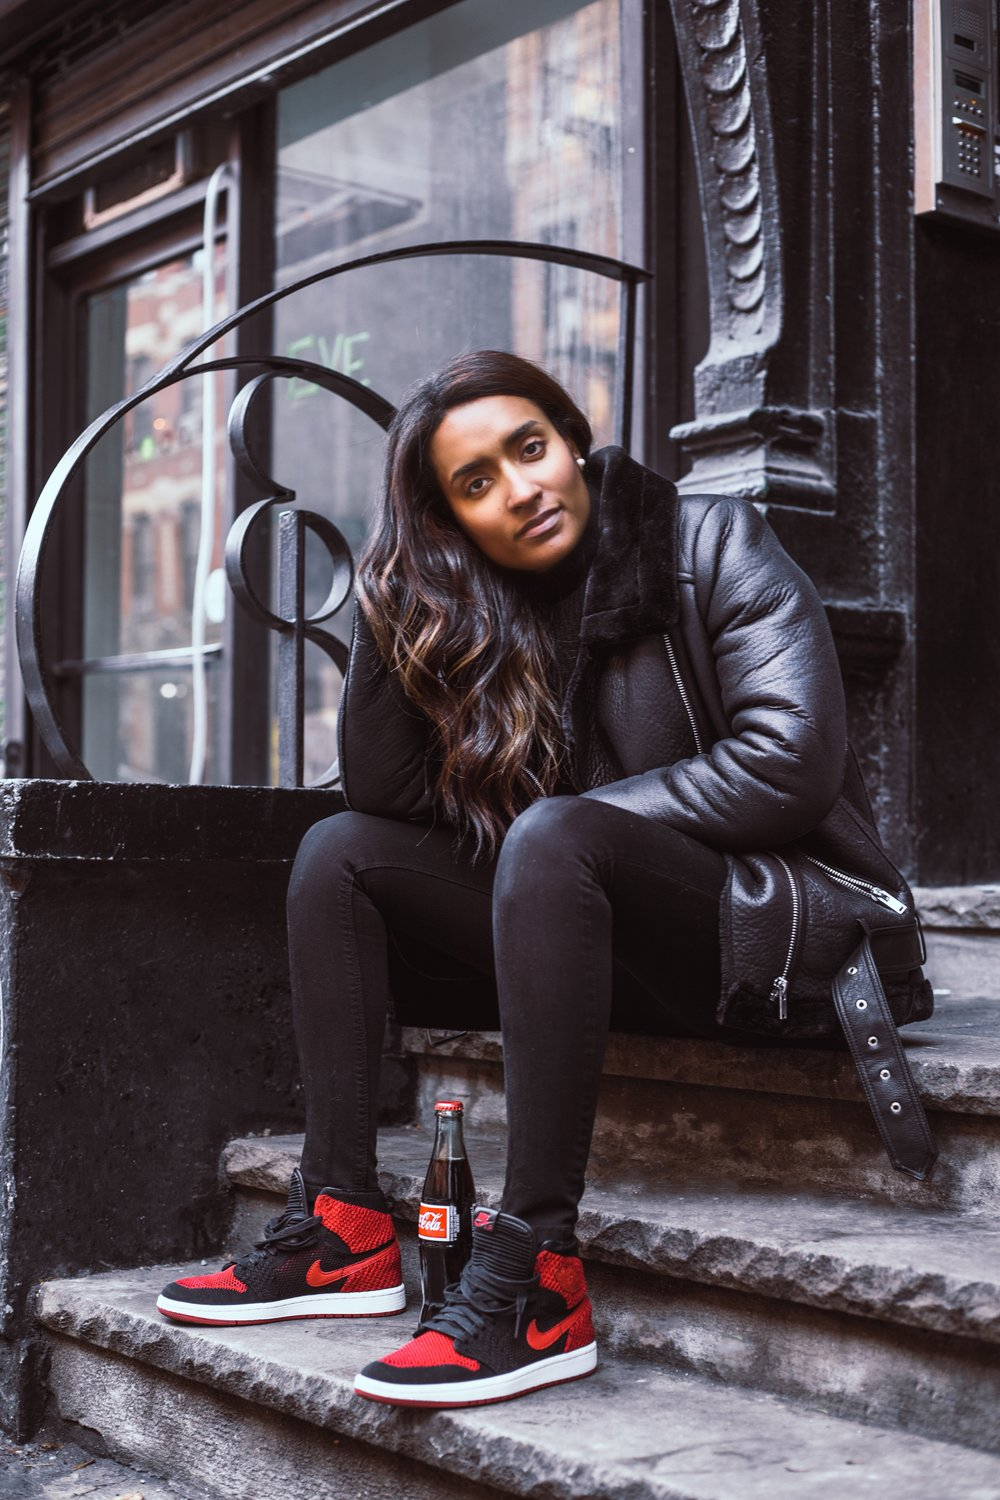 Pair of black and red Nike Air's with Coca-cola bottle on city stoop.